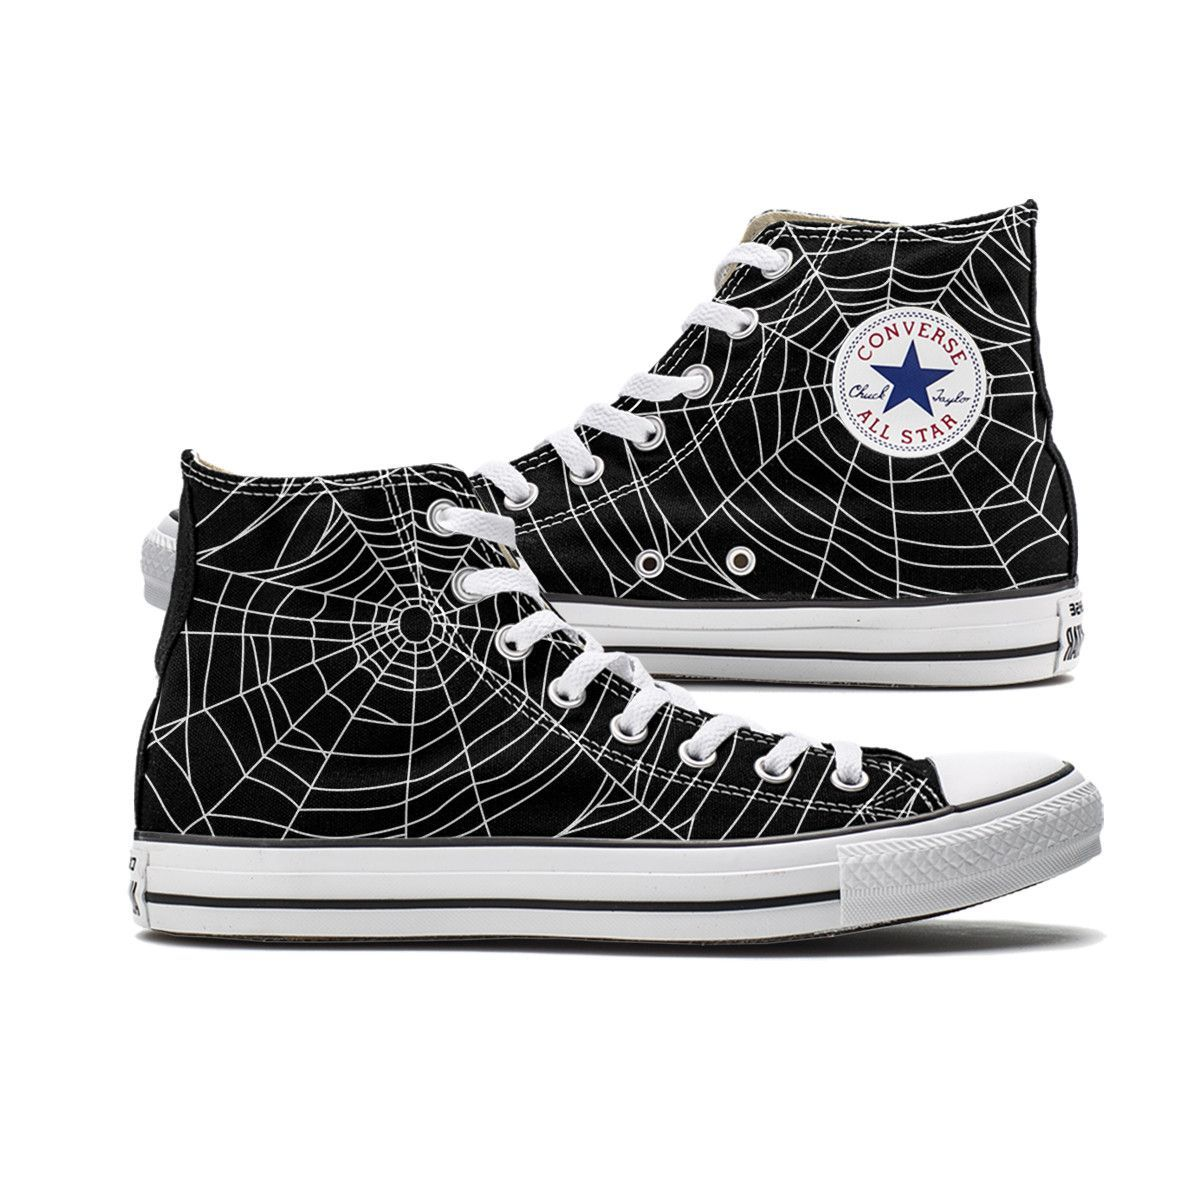 Spider Web Converse Black High Top chucks are here and made to order  especially for you. These Chucks feature a Spider Web pattern over both  panels of the ... e748c30829